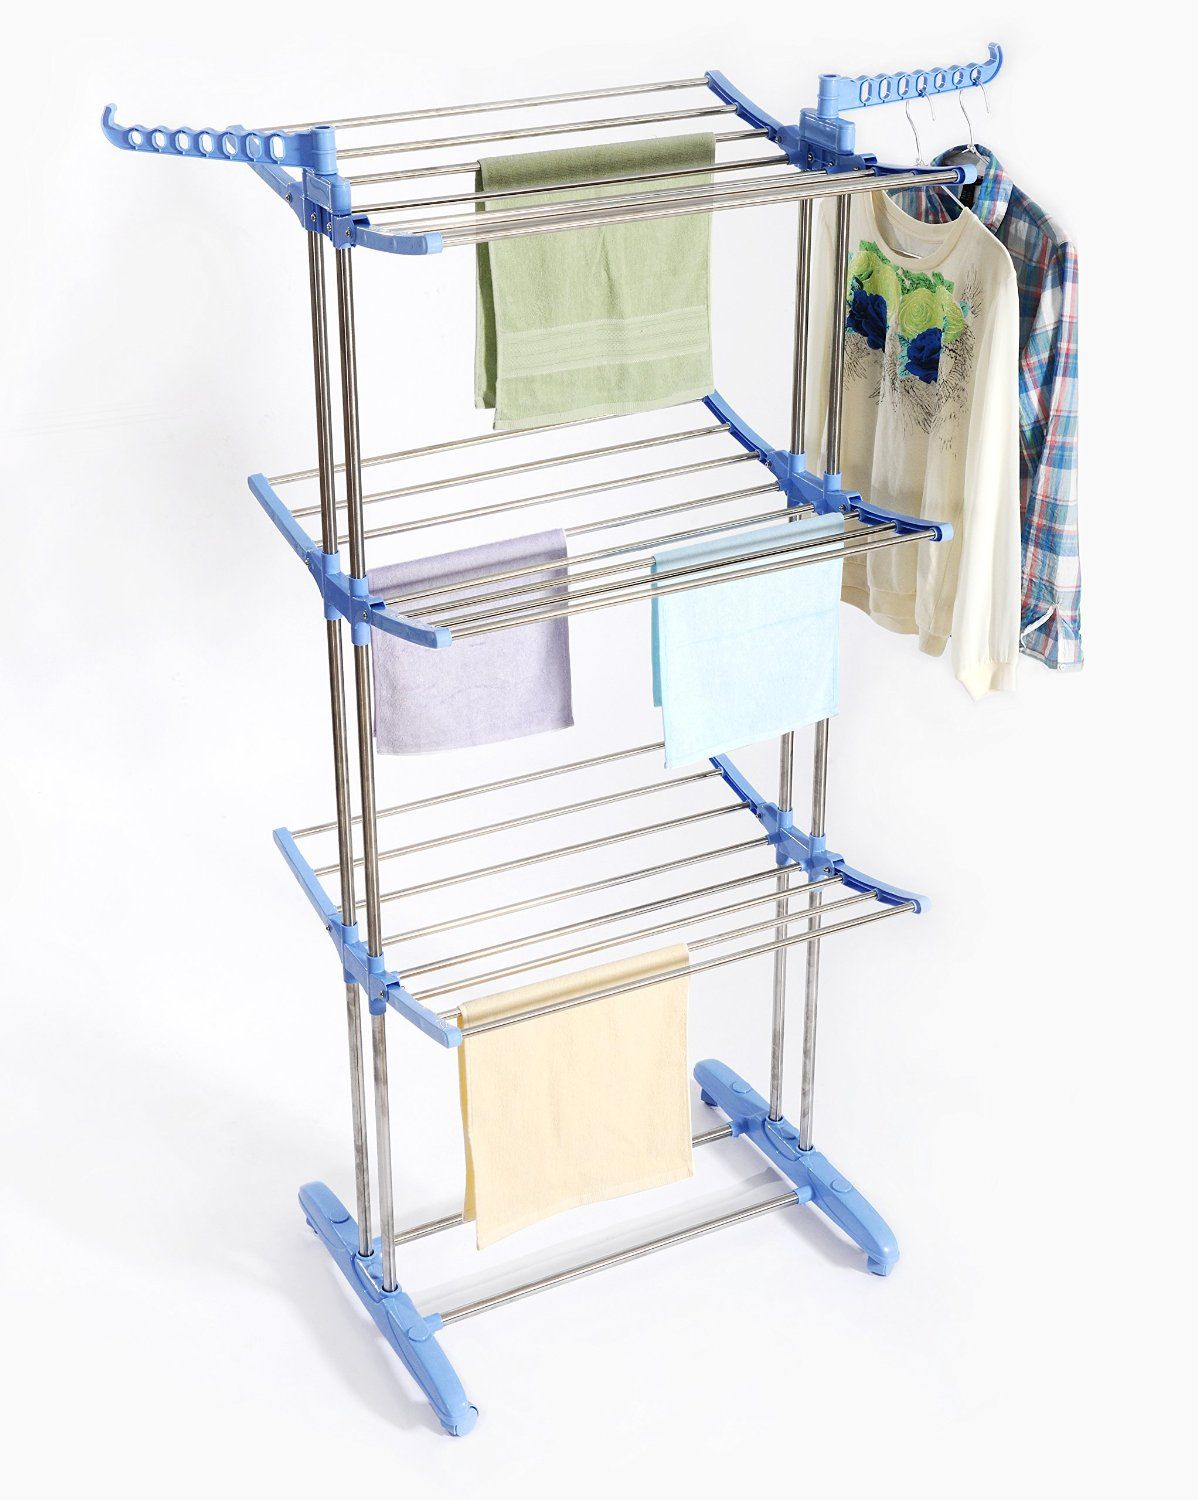 Amazon.com: Premium Clothes Drying Rack Stainless Steel Foldable ...